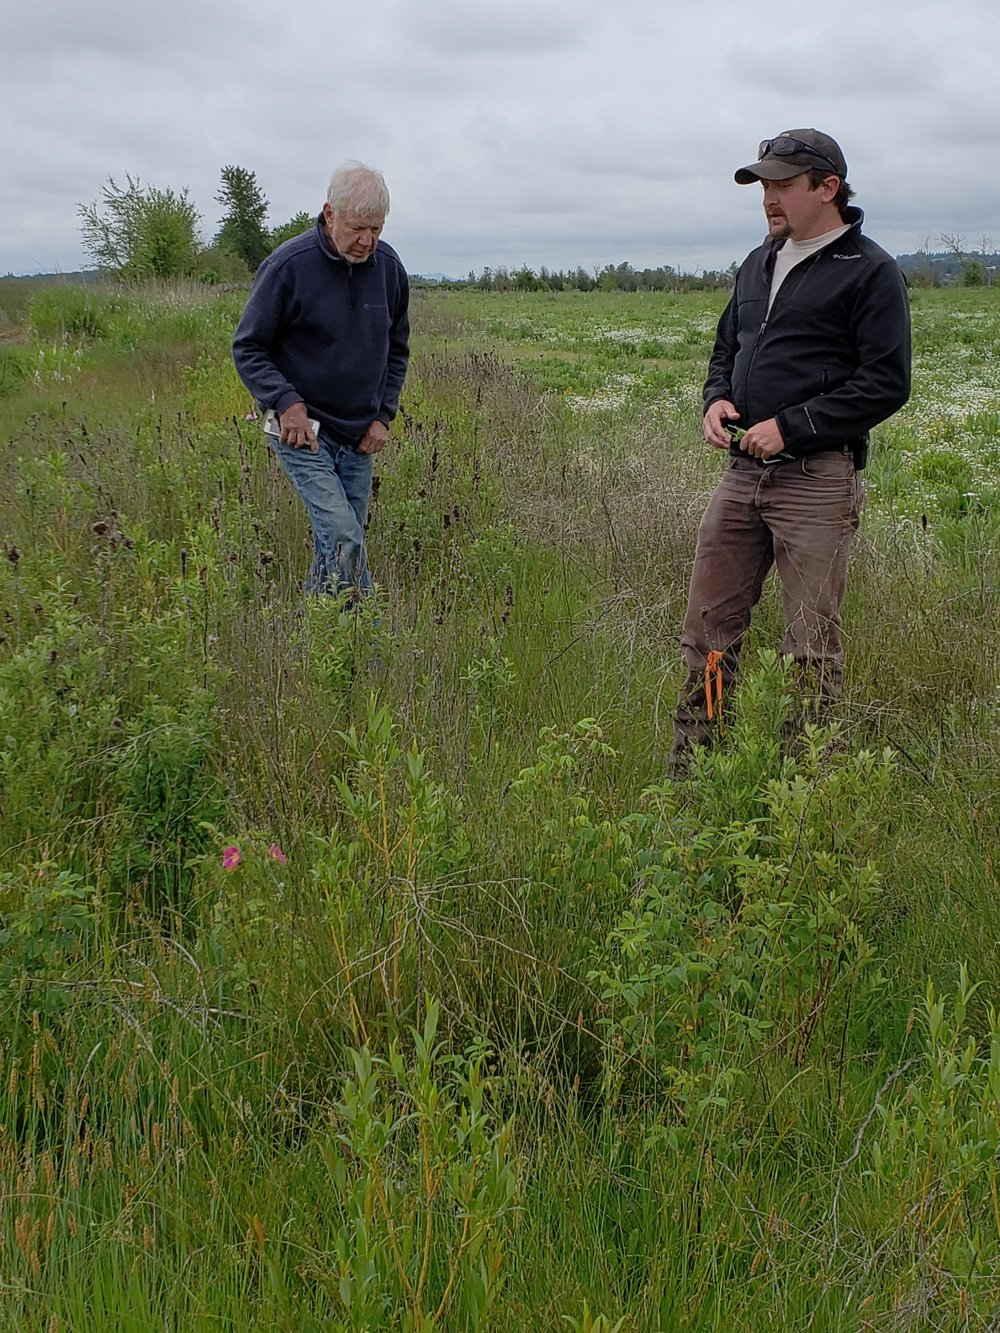 Ken and Cameron view the hedgerow planted on the east side of the property.  The hedgerow is an assortment of plants including  Spirea , willows and native wild roses.